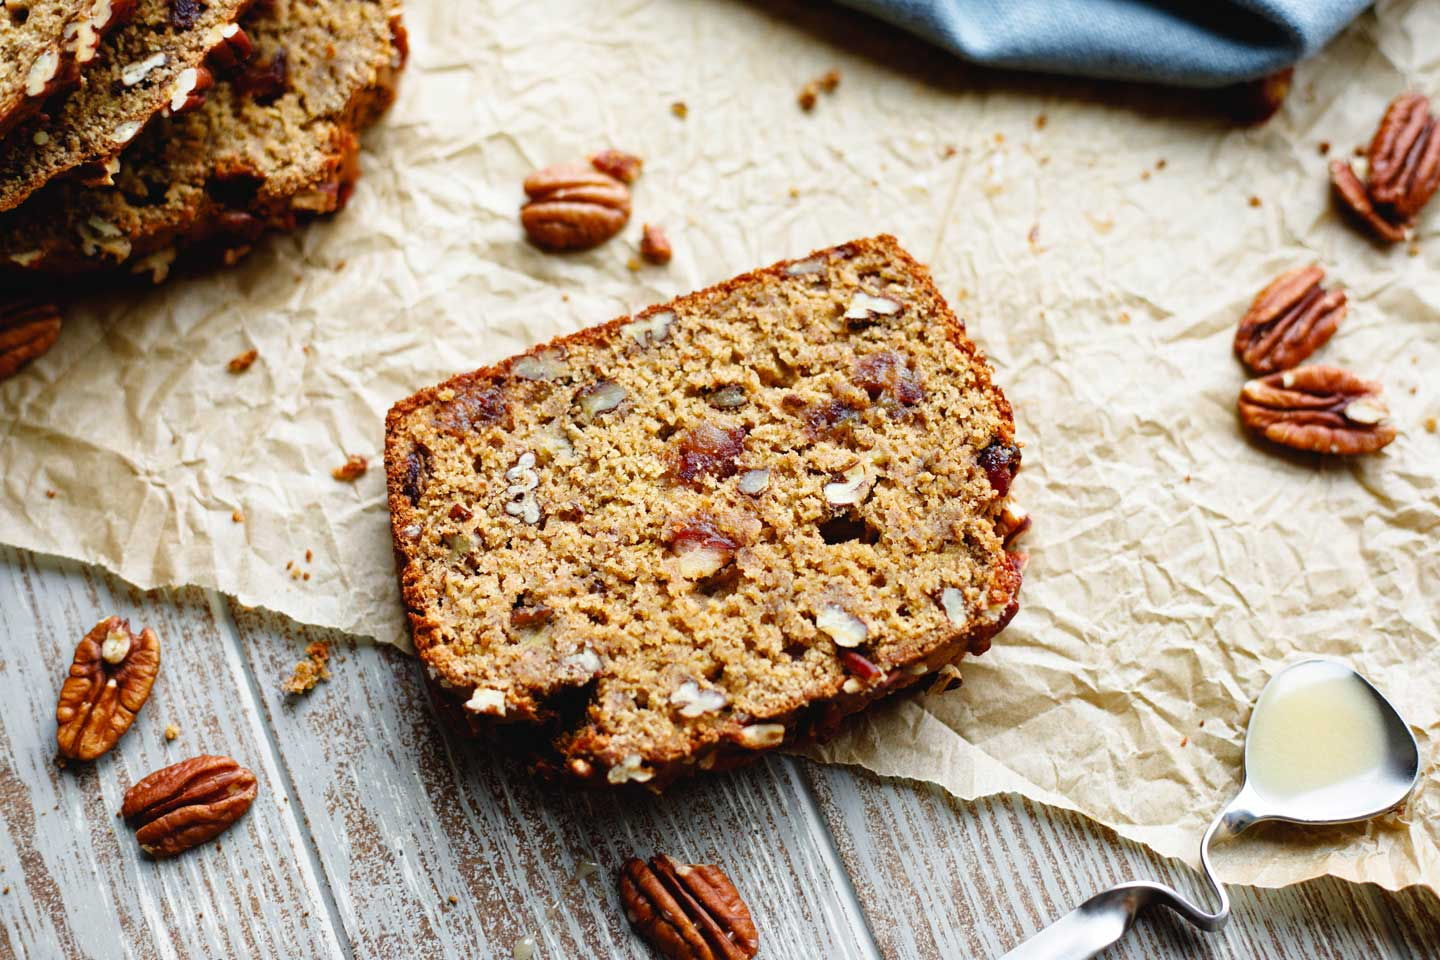 slice of this healthy banana bread on parchment, surrounded by honey spoon, pecans, and additional slices of bread